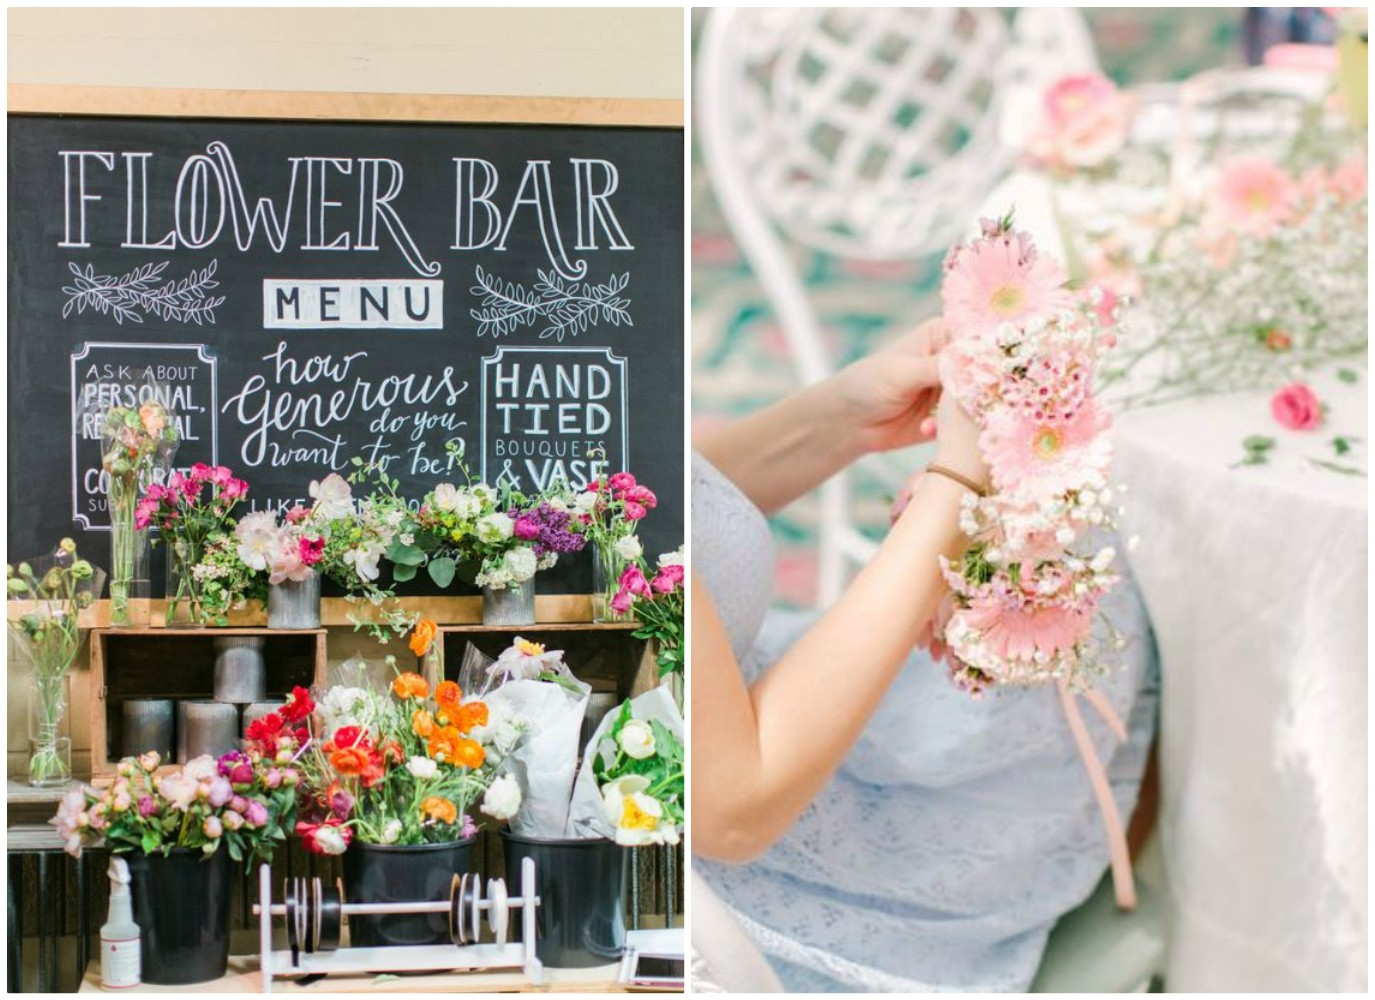 flower power - intrattenere ospiti con il flower bar